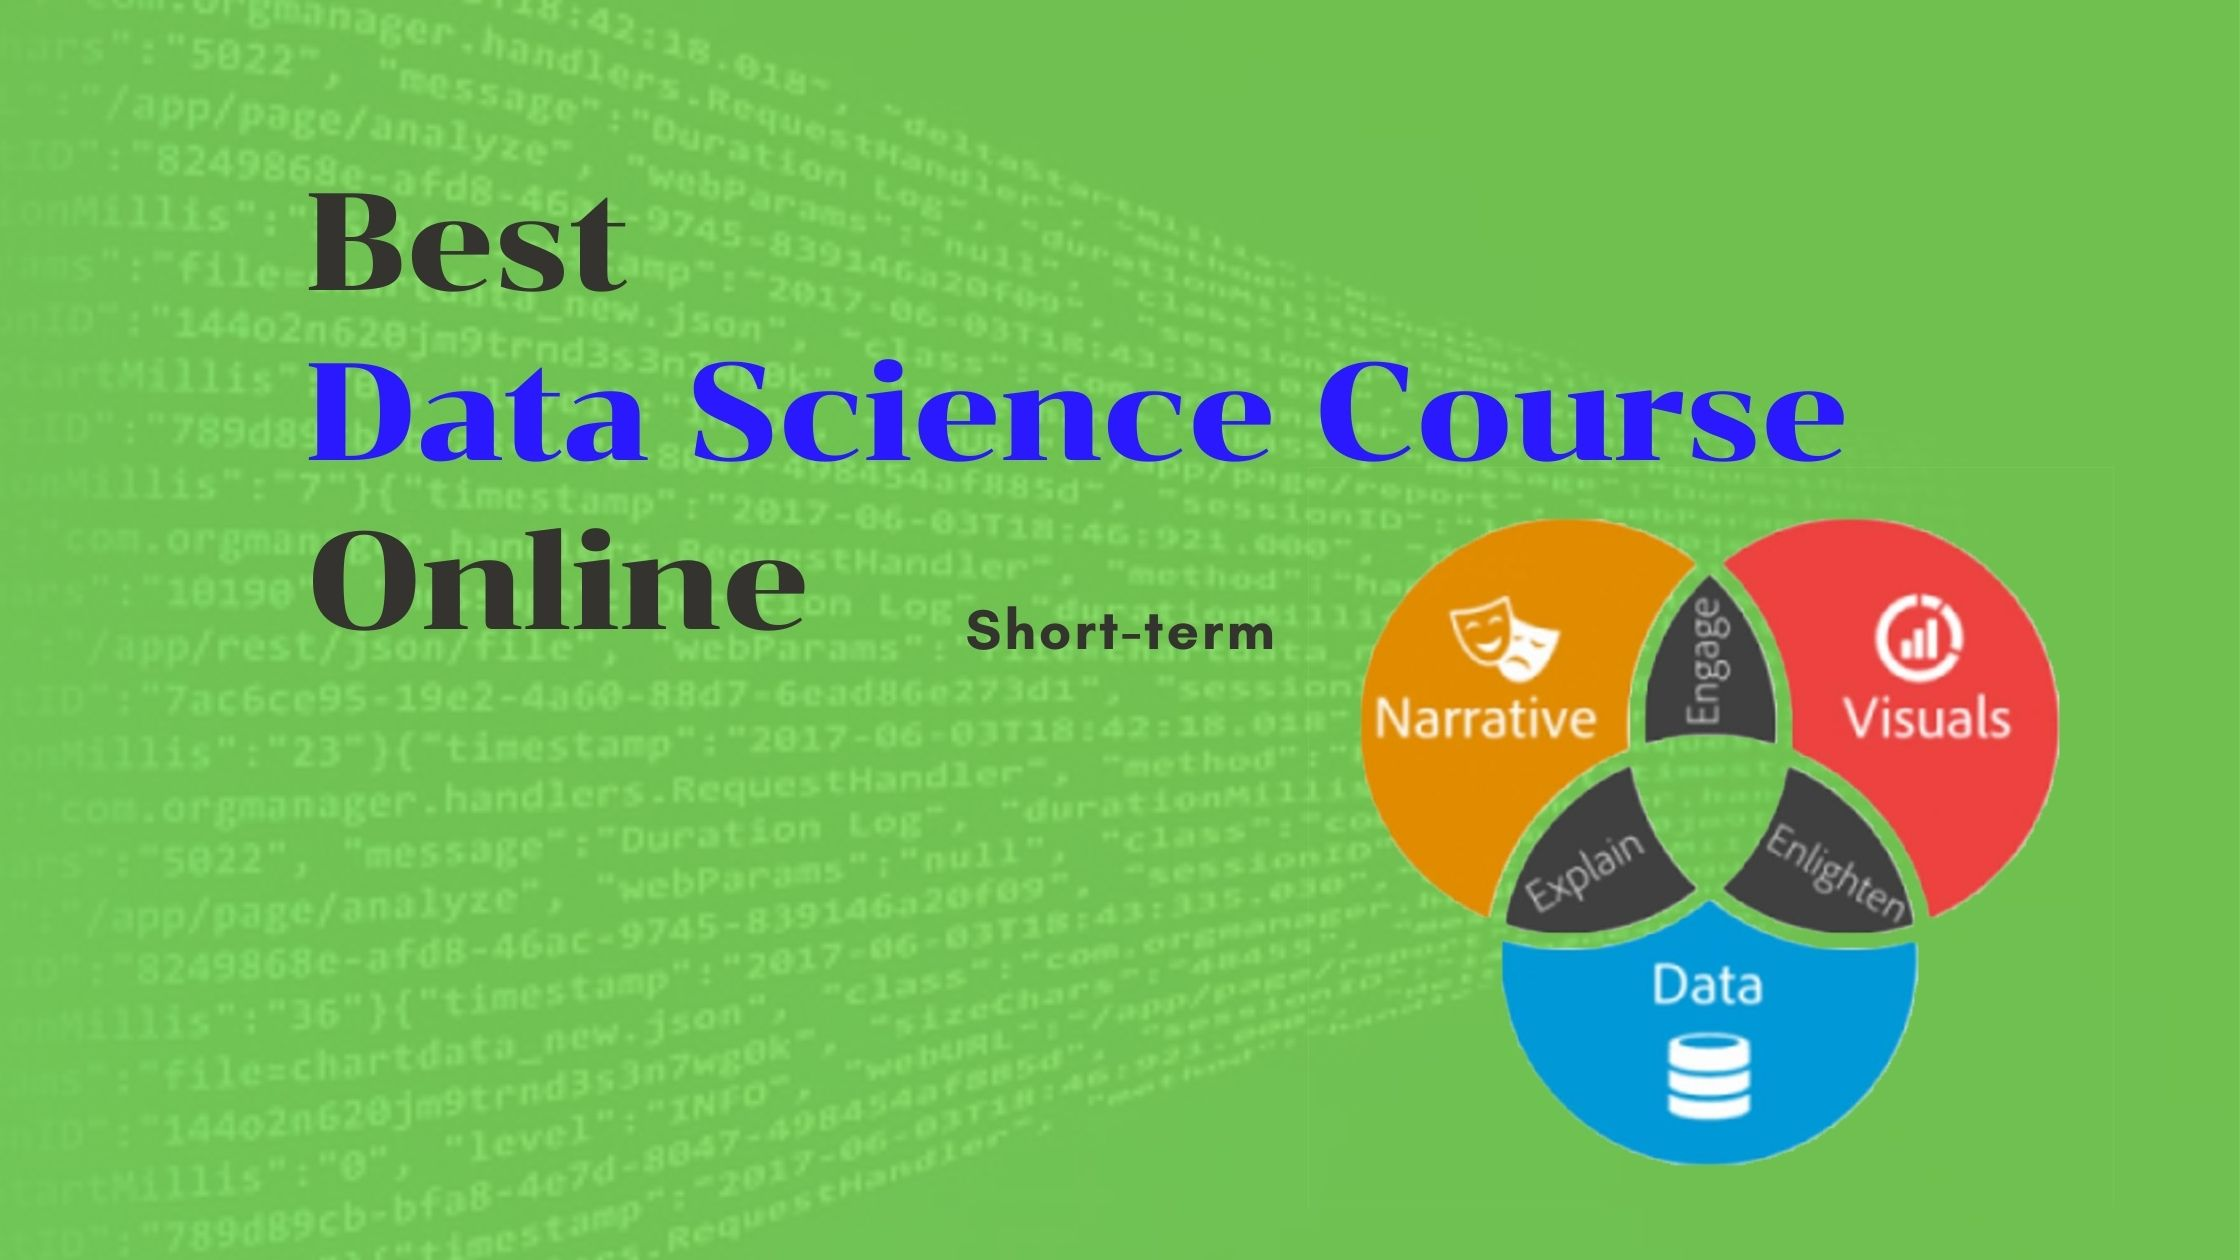 Best Data Science Course Online